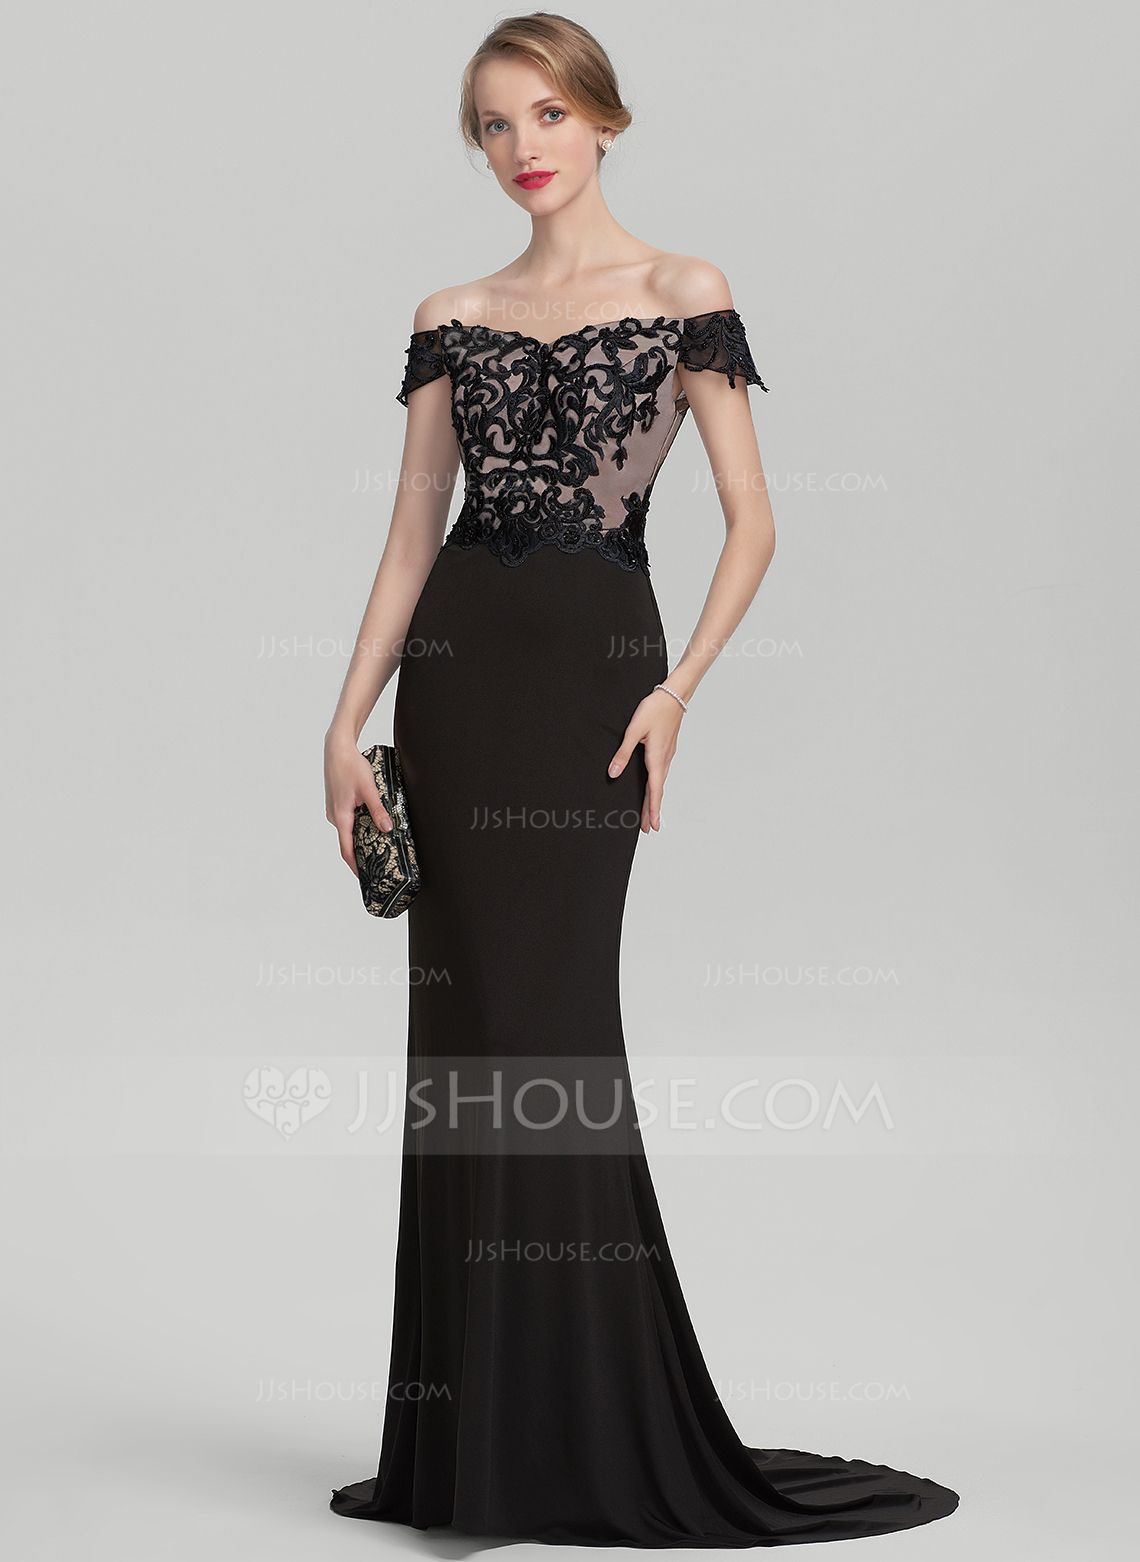 d3b02827 Trumpet/Mermaid Off-the-Shoulder Sweep Train Beading Sequins Zipper Up  Regular Straps Sleeveless No Black General Plus Lace Jersey Height:5.7ft  Bust:33in ...